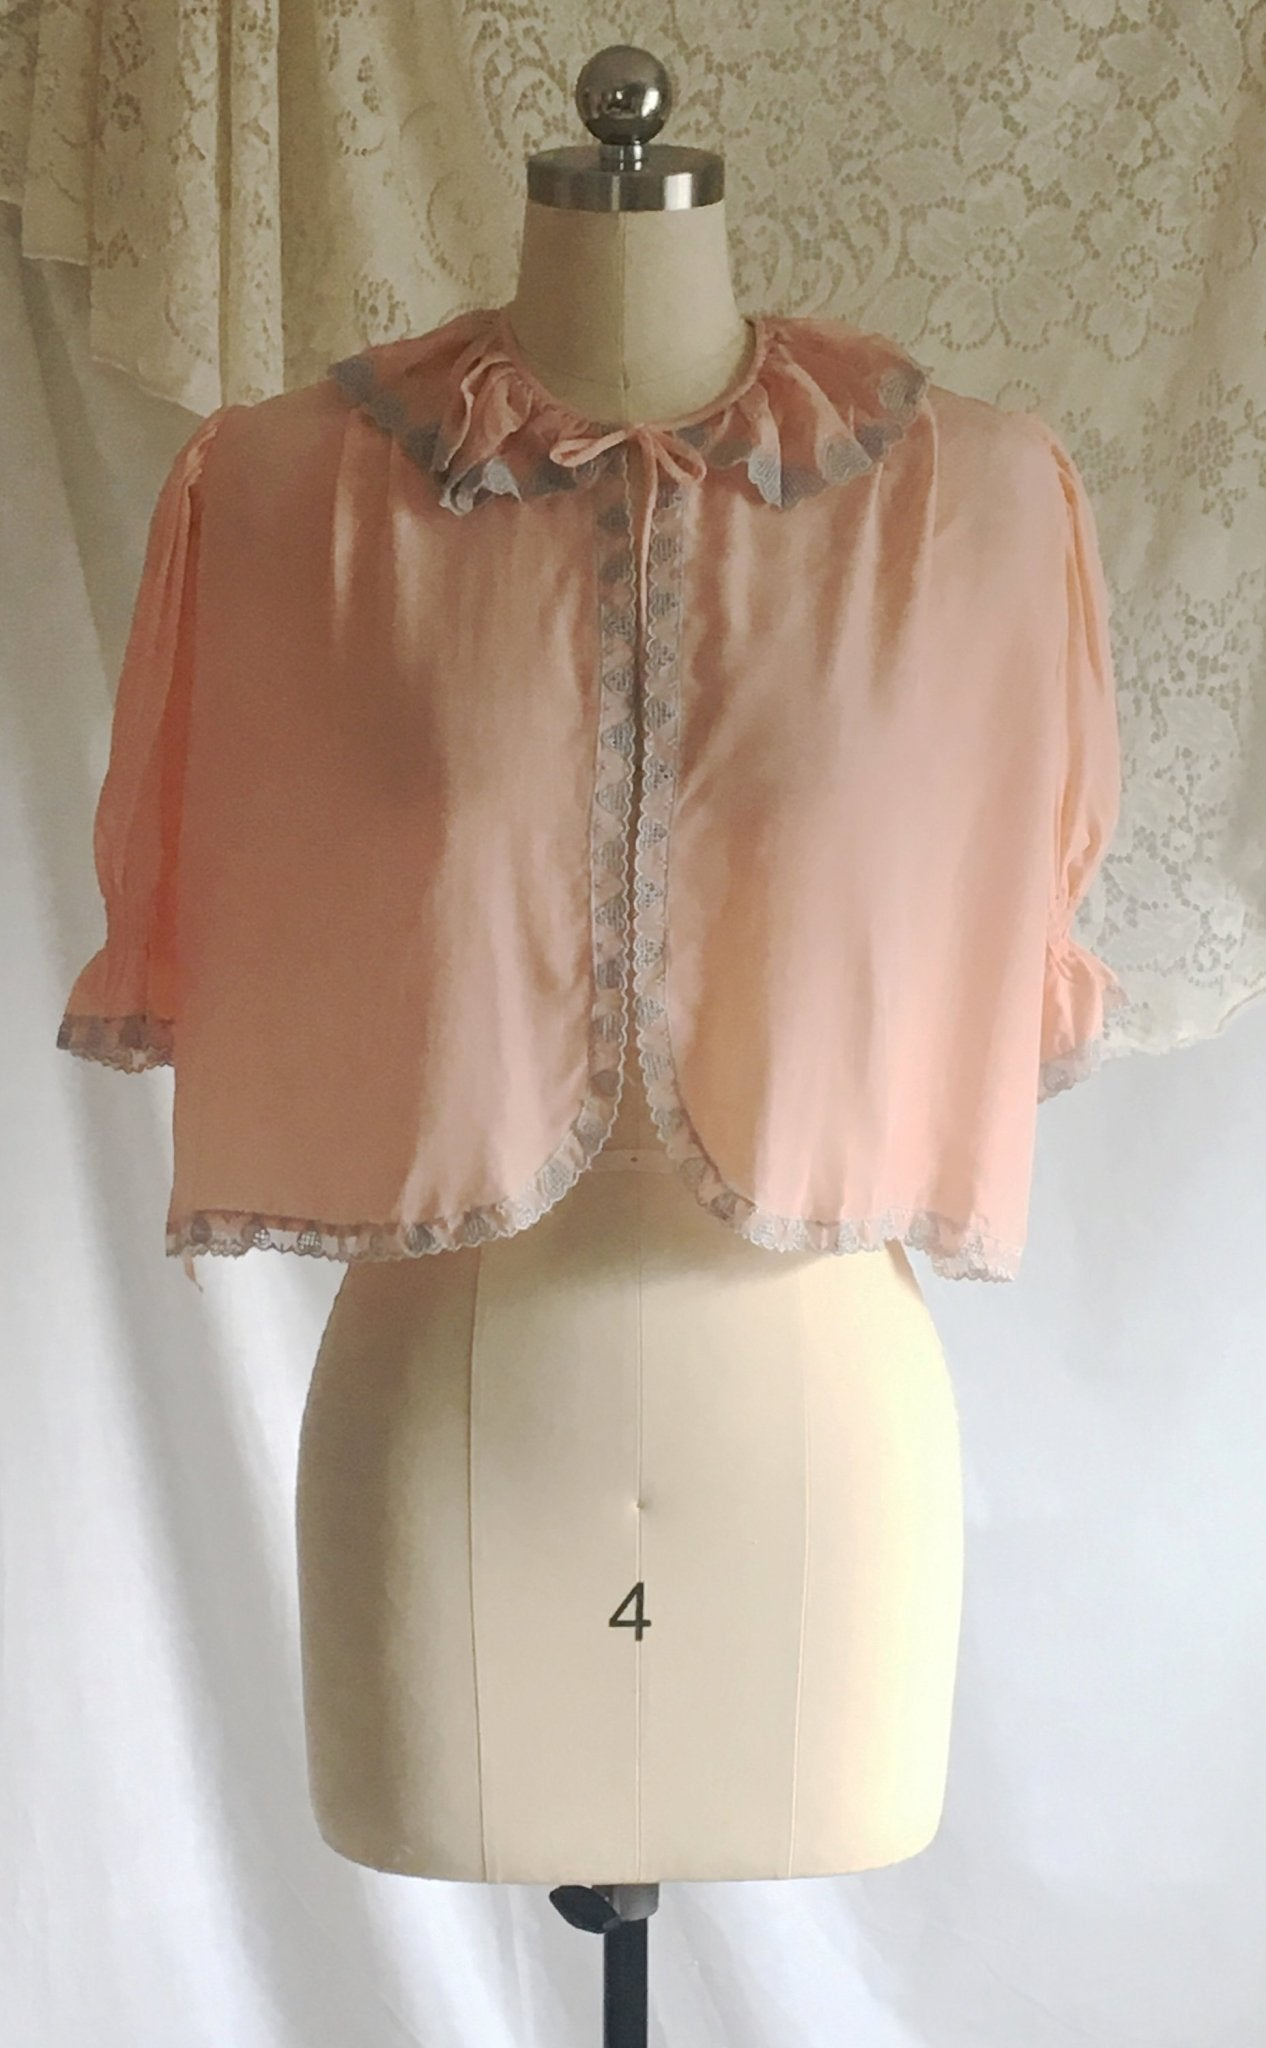 Vintage 1940's Bed Jacket | Bubblegum Pink Rayon with Gray Heart Embroidery | Size XS, S - Daggers & Dames